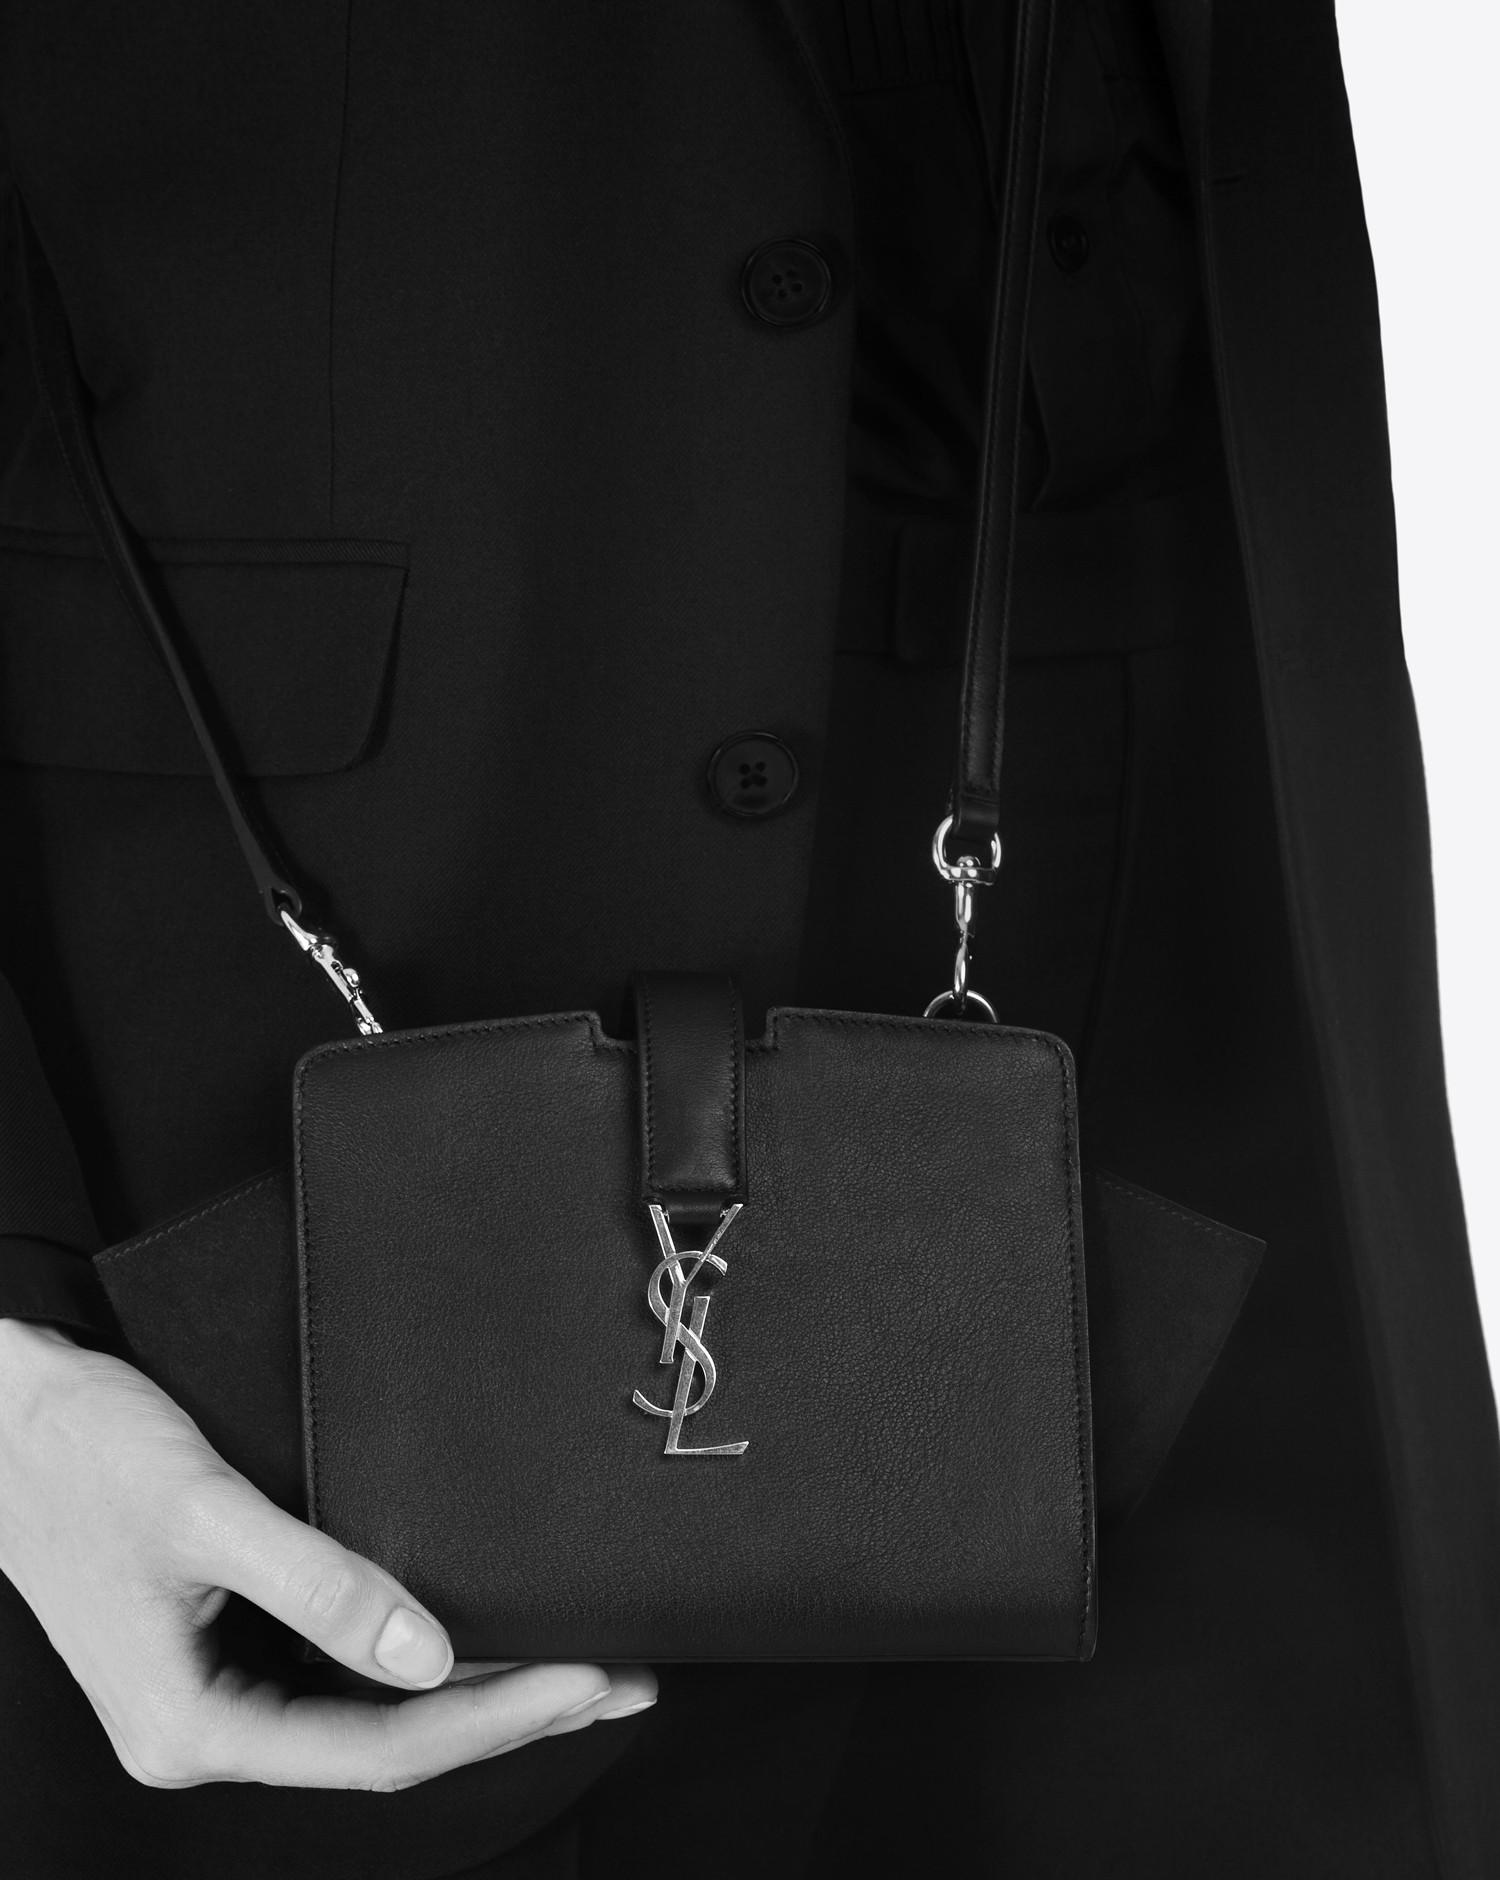 c5fef02c35 Lyst - Saint Laurent Toy Ysl Cabas Bag In Black Leather And Suede in ...